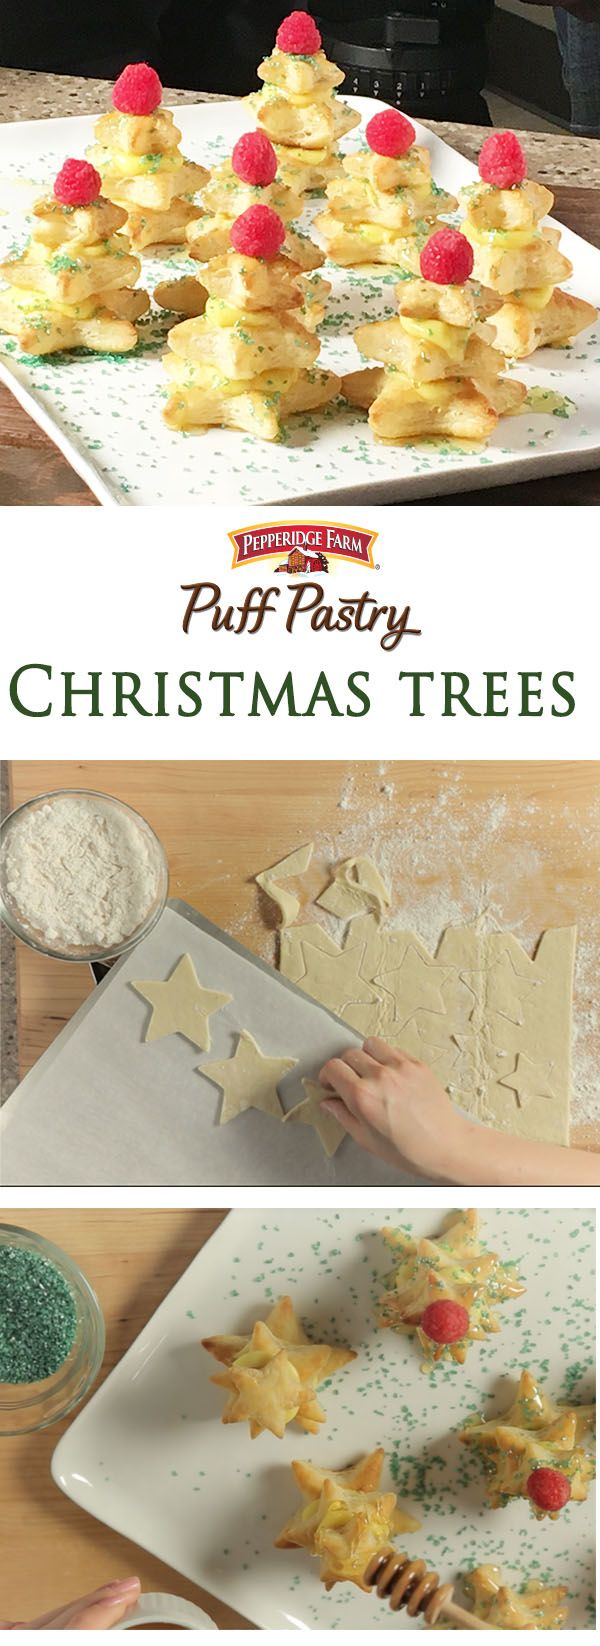 Puff Pastry Christmas Trees Recipe. Oh what fun it is to make these charming Puff Pastry Christmas Trees. Use star cookie cutters in graduated sizes to build a little dessert forest. Simply layer with vanilla pudding, drizzle with honey and top with colorful sugar. Kids will love to help build and decorate these tasty masterpieces. An impressive dessert for your next holiday party or even just a fun activity with the family…